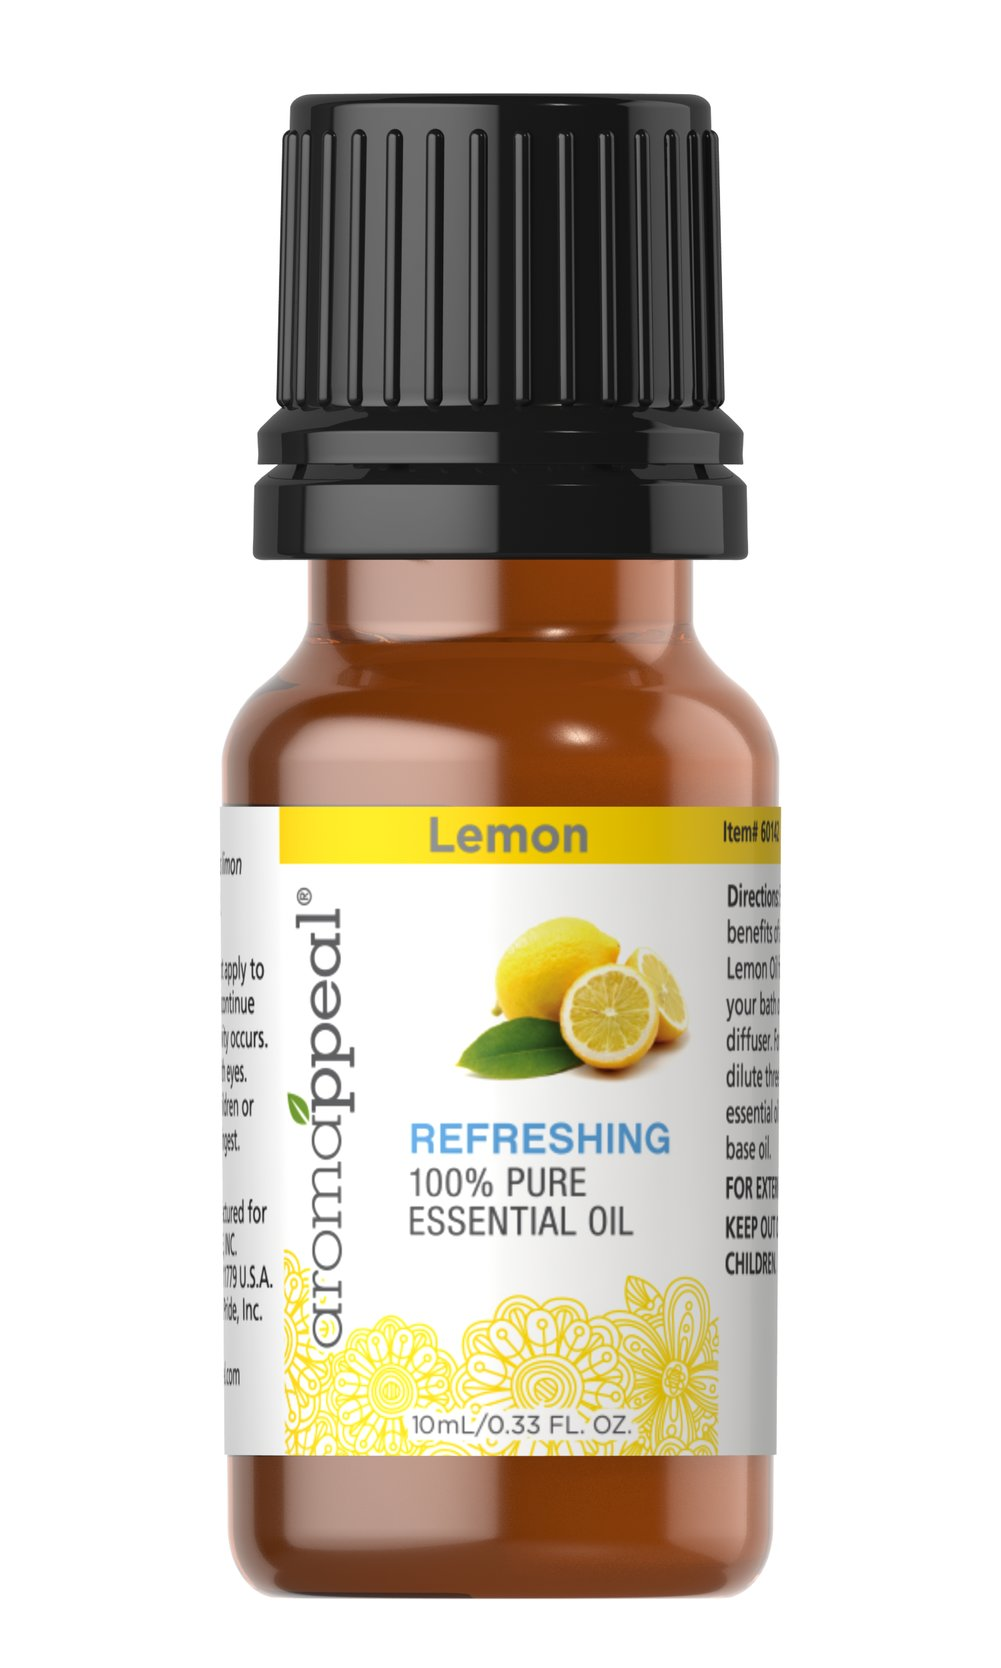 Lemon 100% Pure Essential Oil Arouse your senses with the cleansing, purifying freshness of Lemon Oil. Treasured for its sweetly mild, citrusy fragrance, Lemon Oil can be applied all over your body – especially your face – to soften and smooth your skin.  10 ml Oil  $9.99